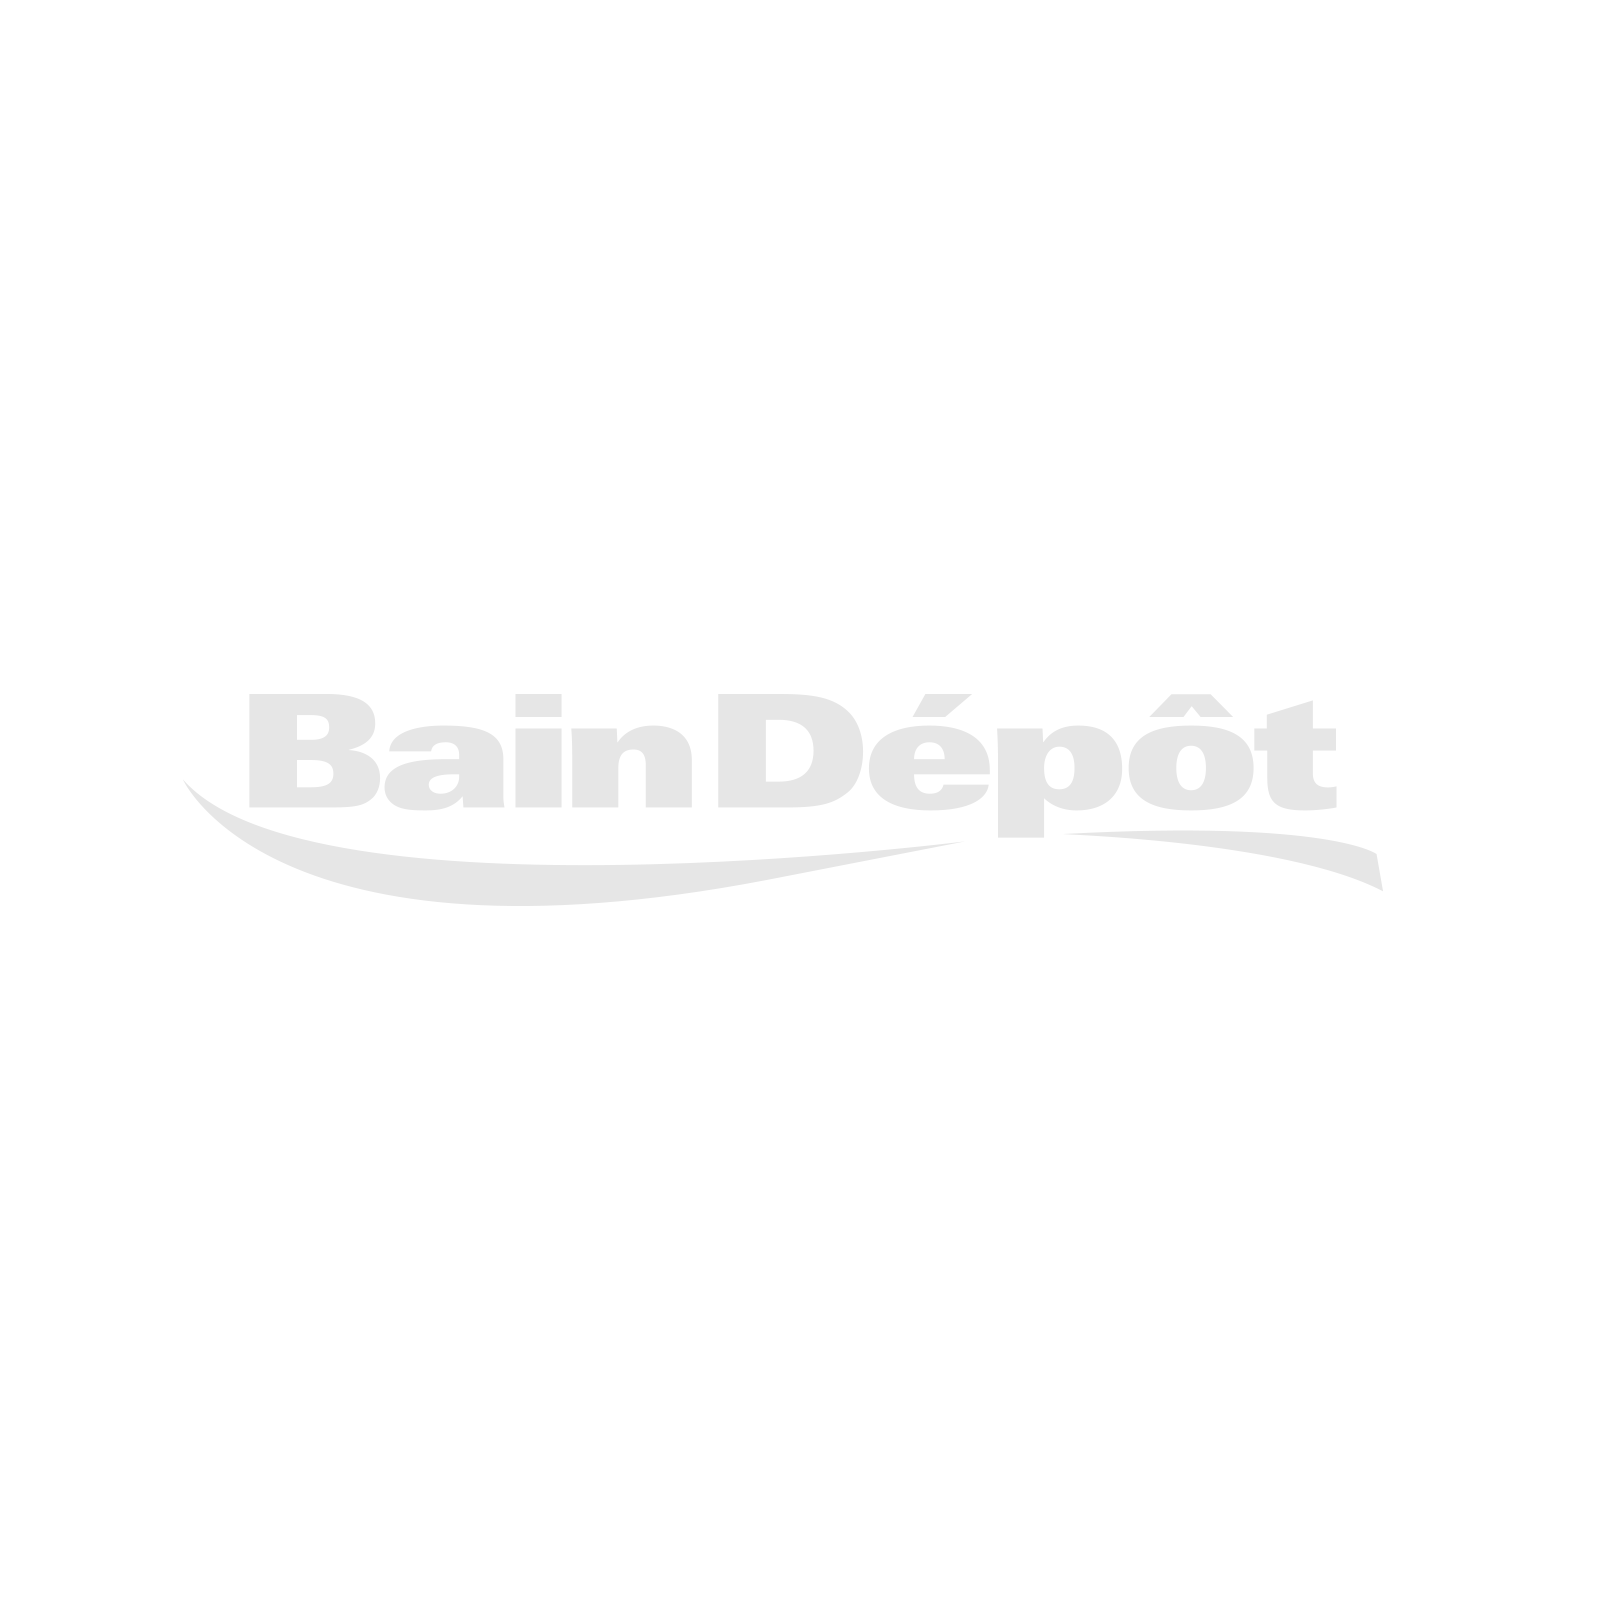 "DUO CRAIG 60"" x 32"" alcove apron bathtub with chrome tub-shower faucet and rain showerhead (left side drain)"